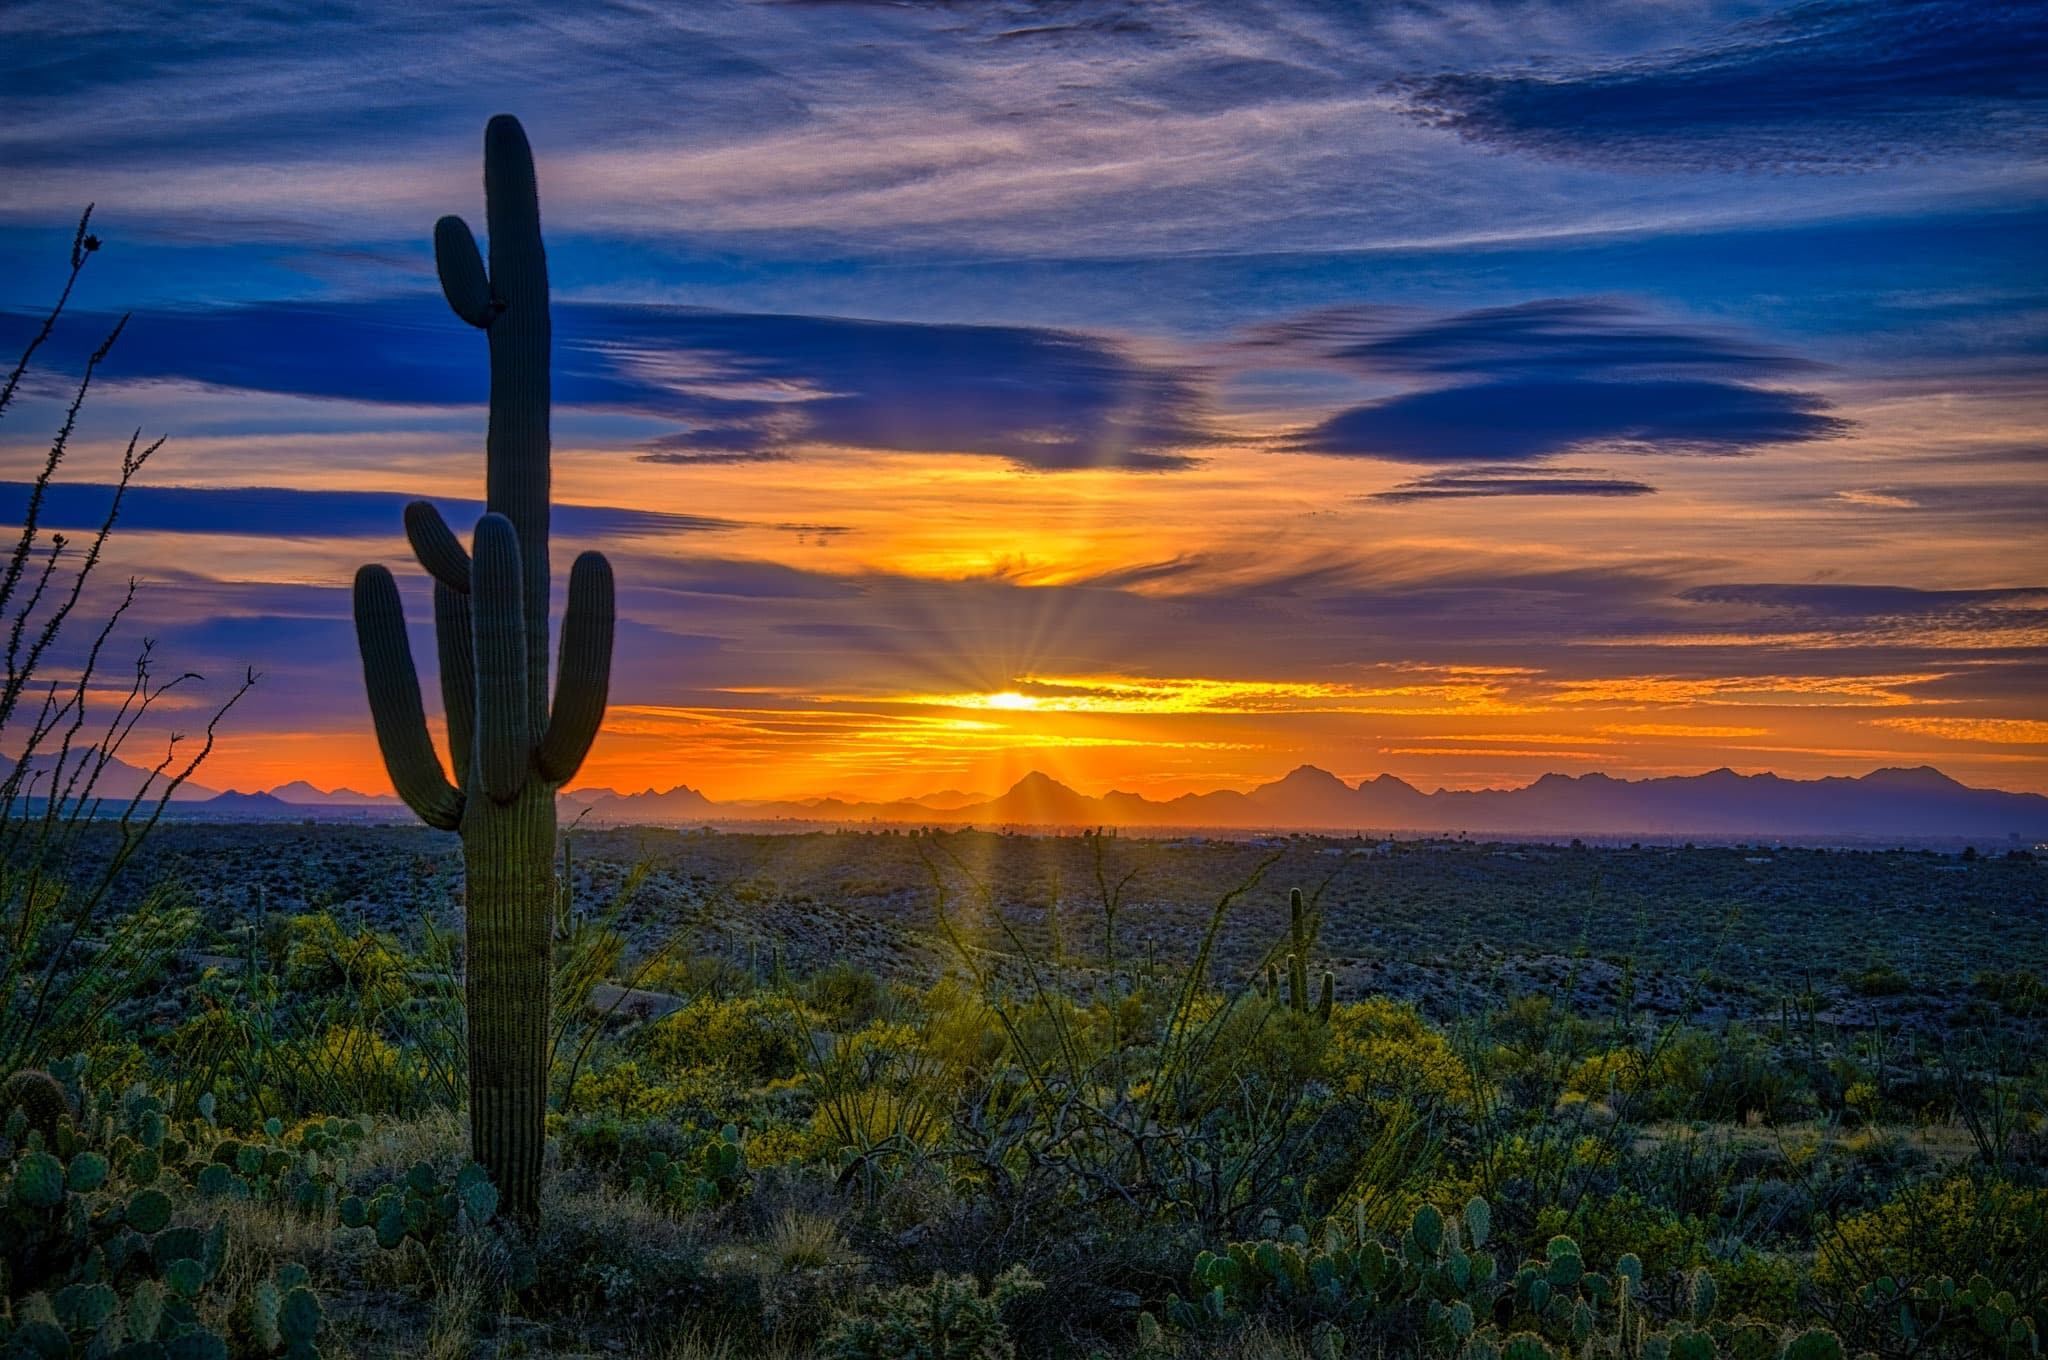 Saguaro cactus silhouetted by setting sun in Saguaro National Park.